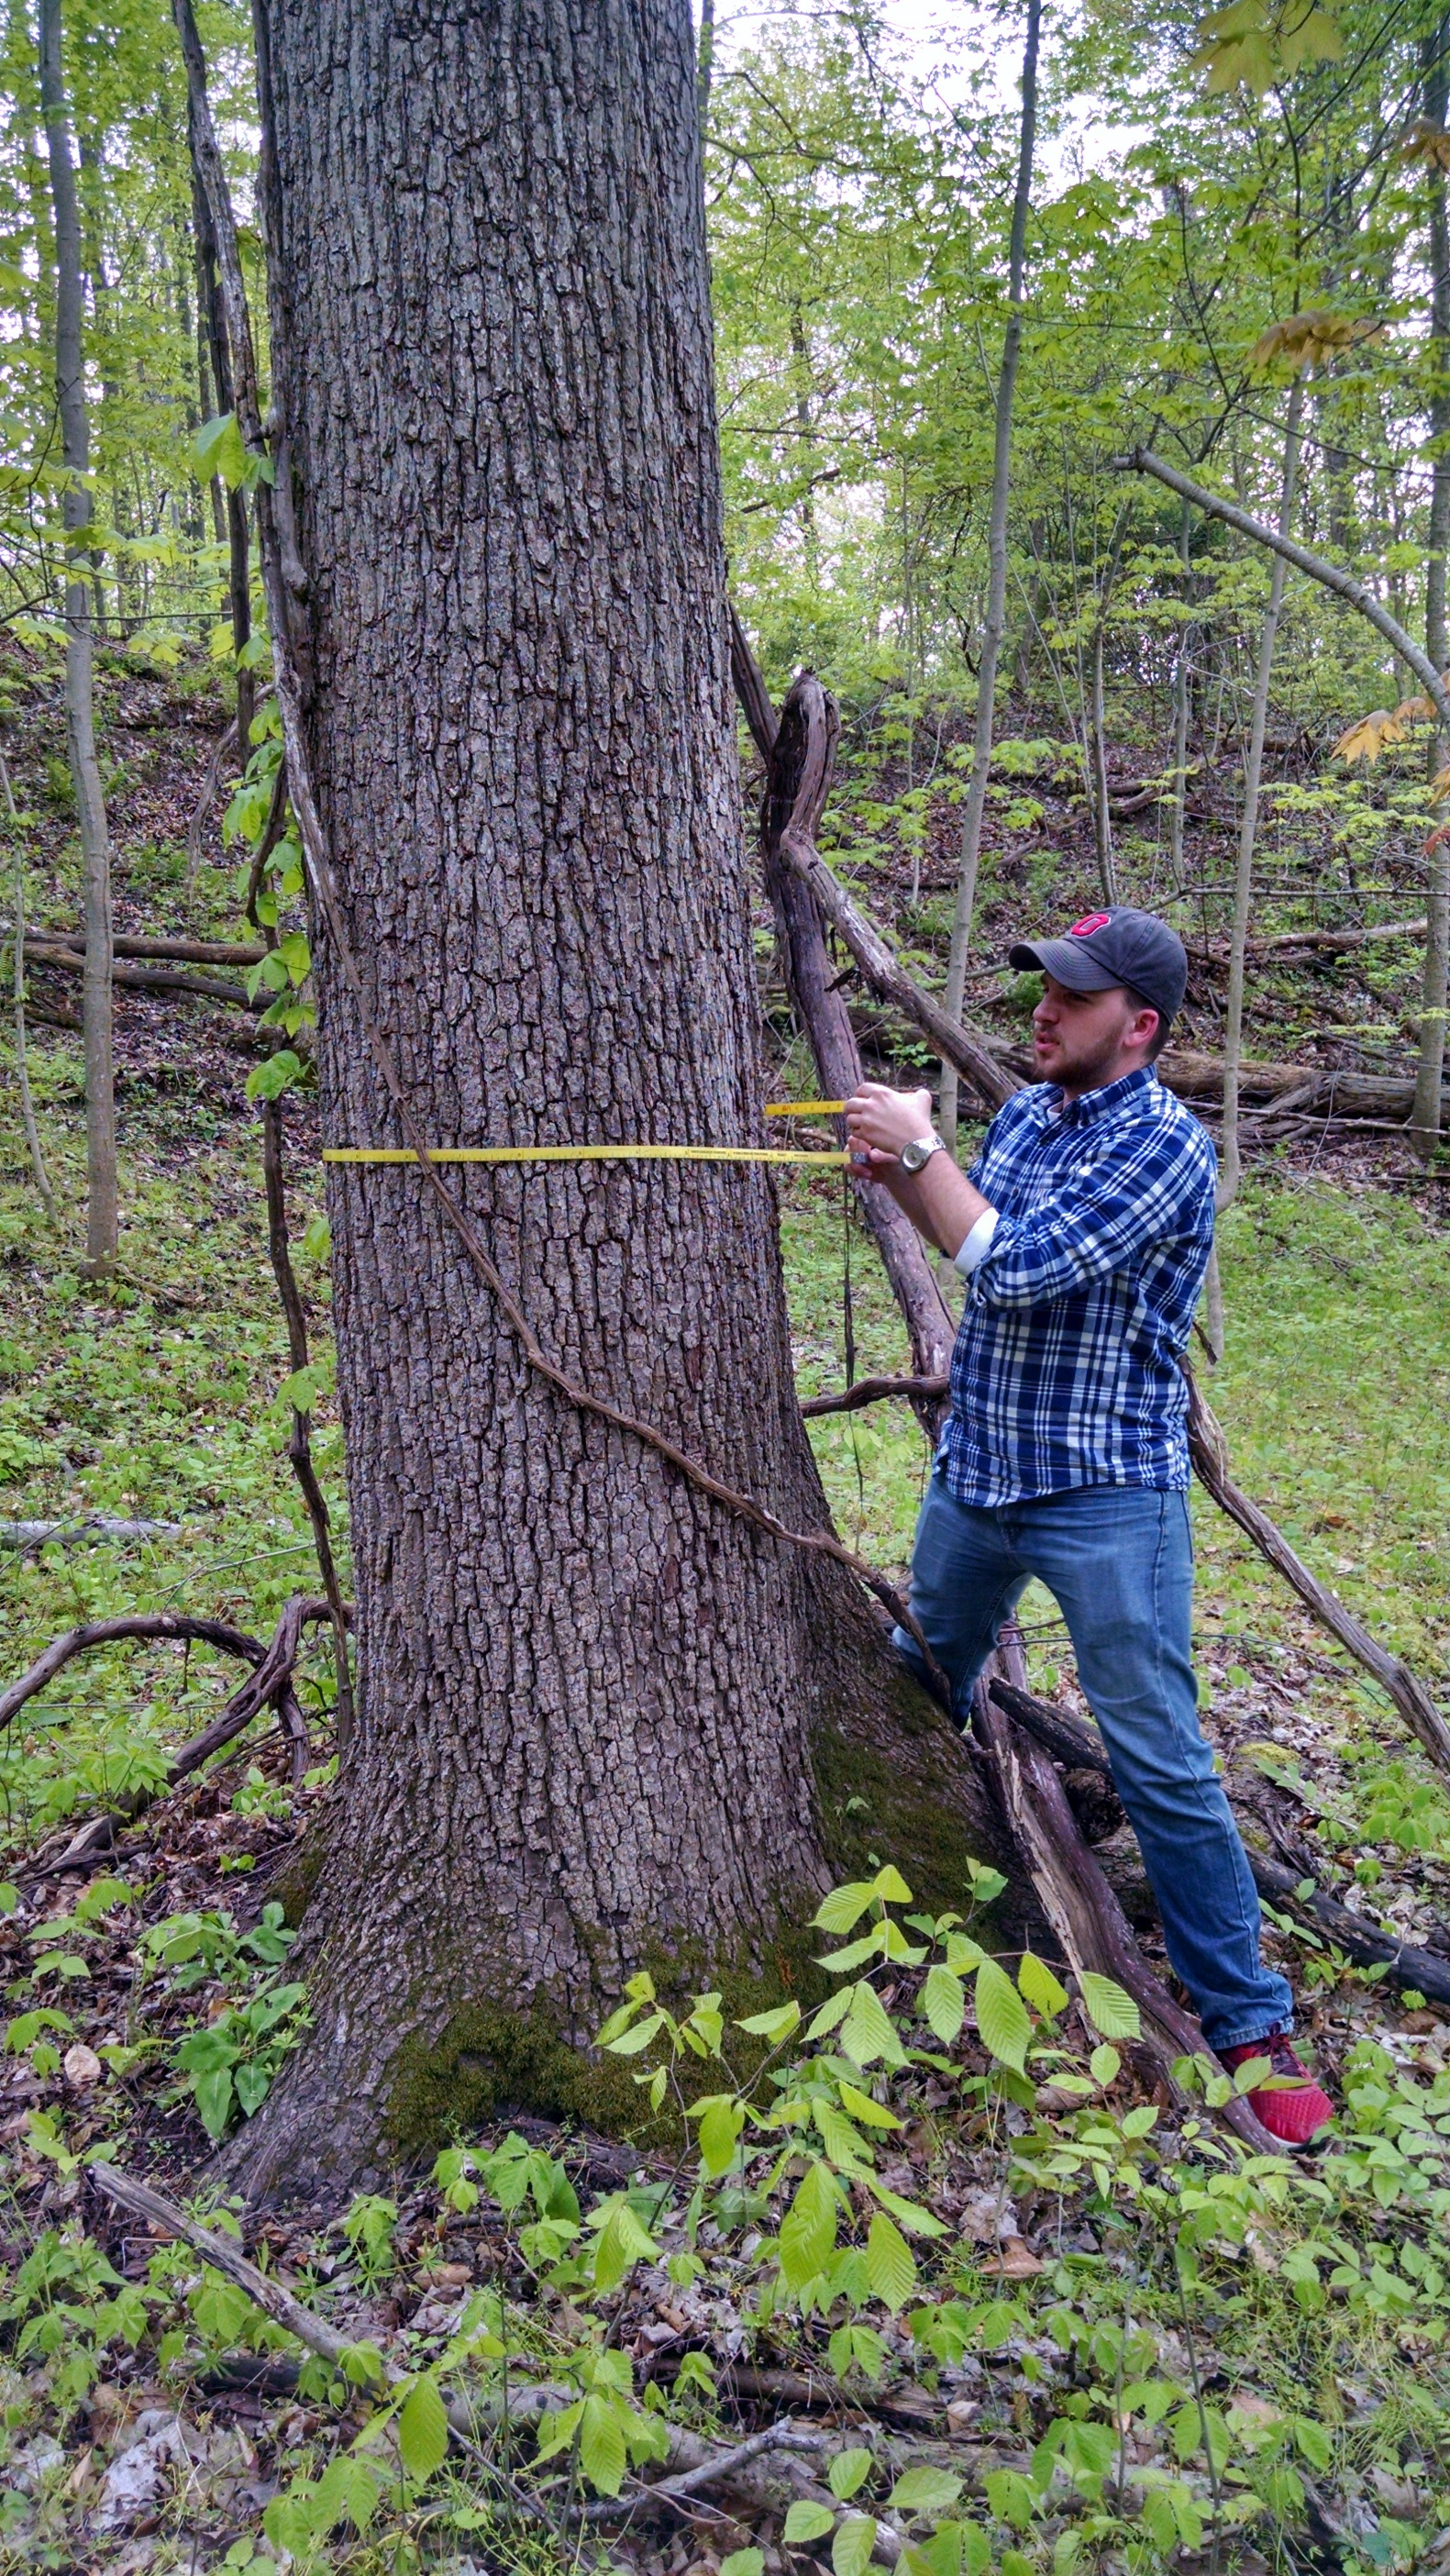 Measuring walnut trees during ENR 4900.02 Capstone Course on the OSU Mansfield campus (Photo by Sarah Rose)